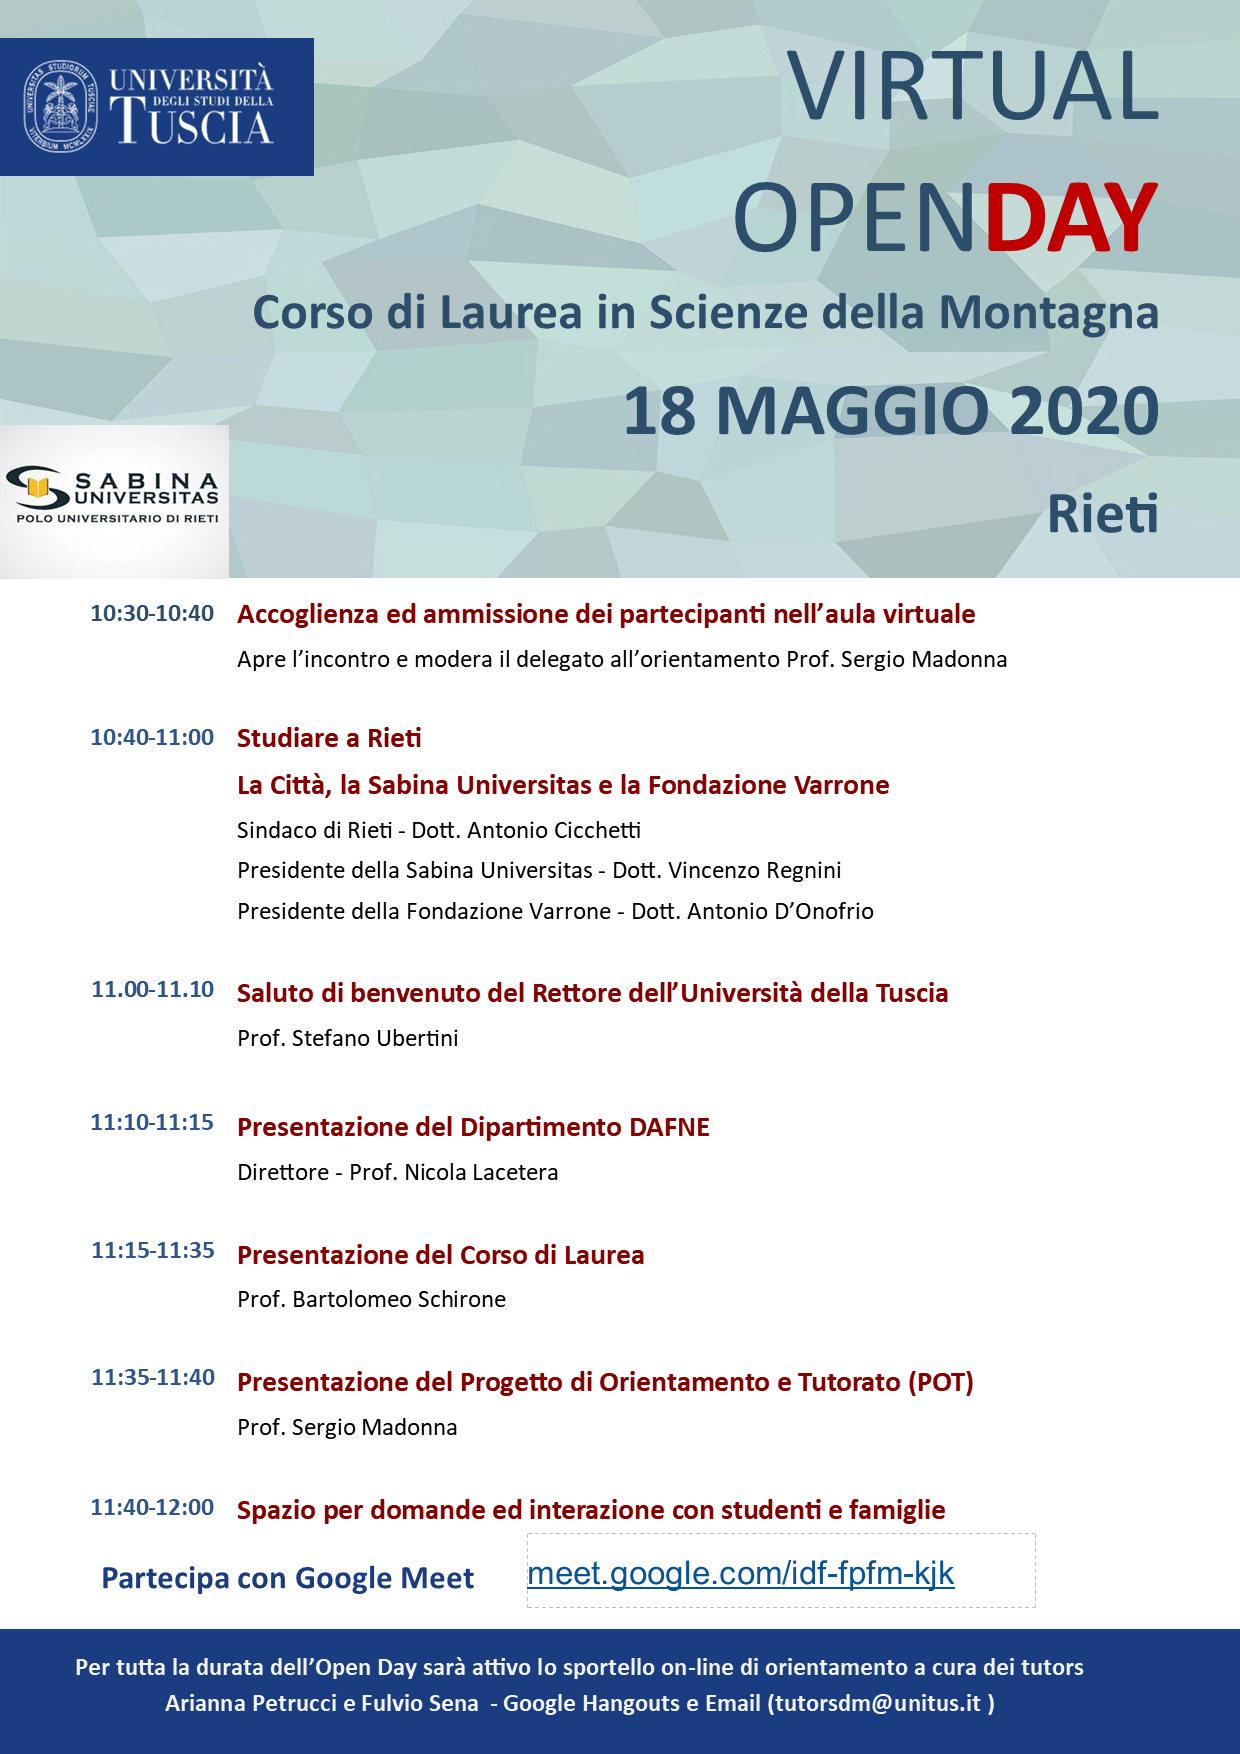 UNITUS - Virtual Open Day - Programma Rieti 18052020png